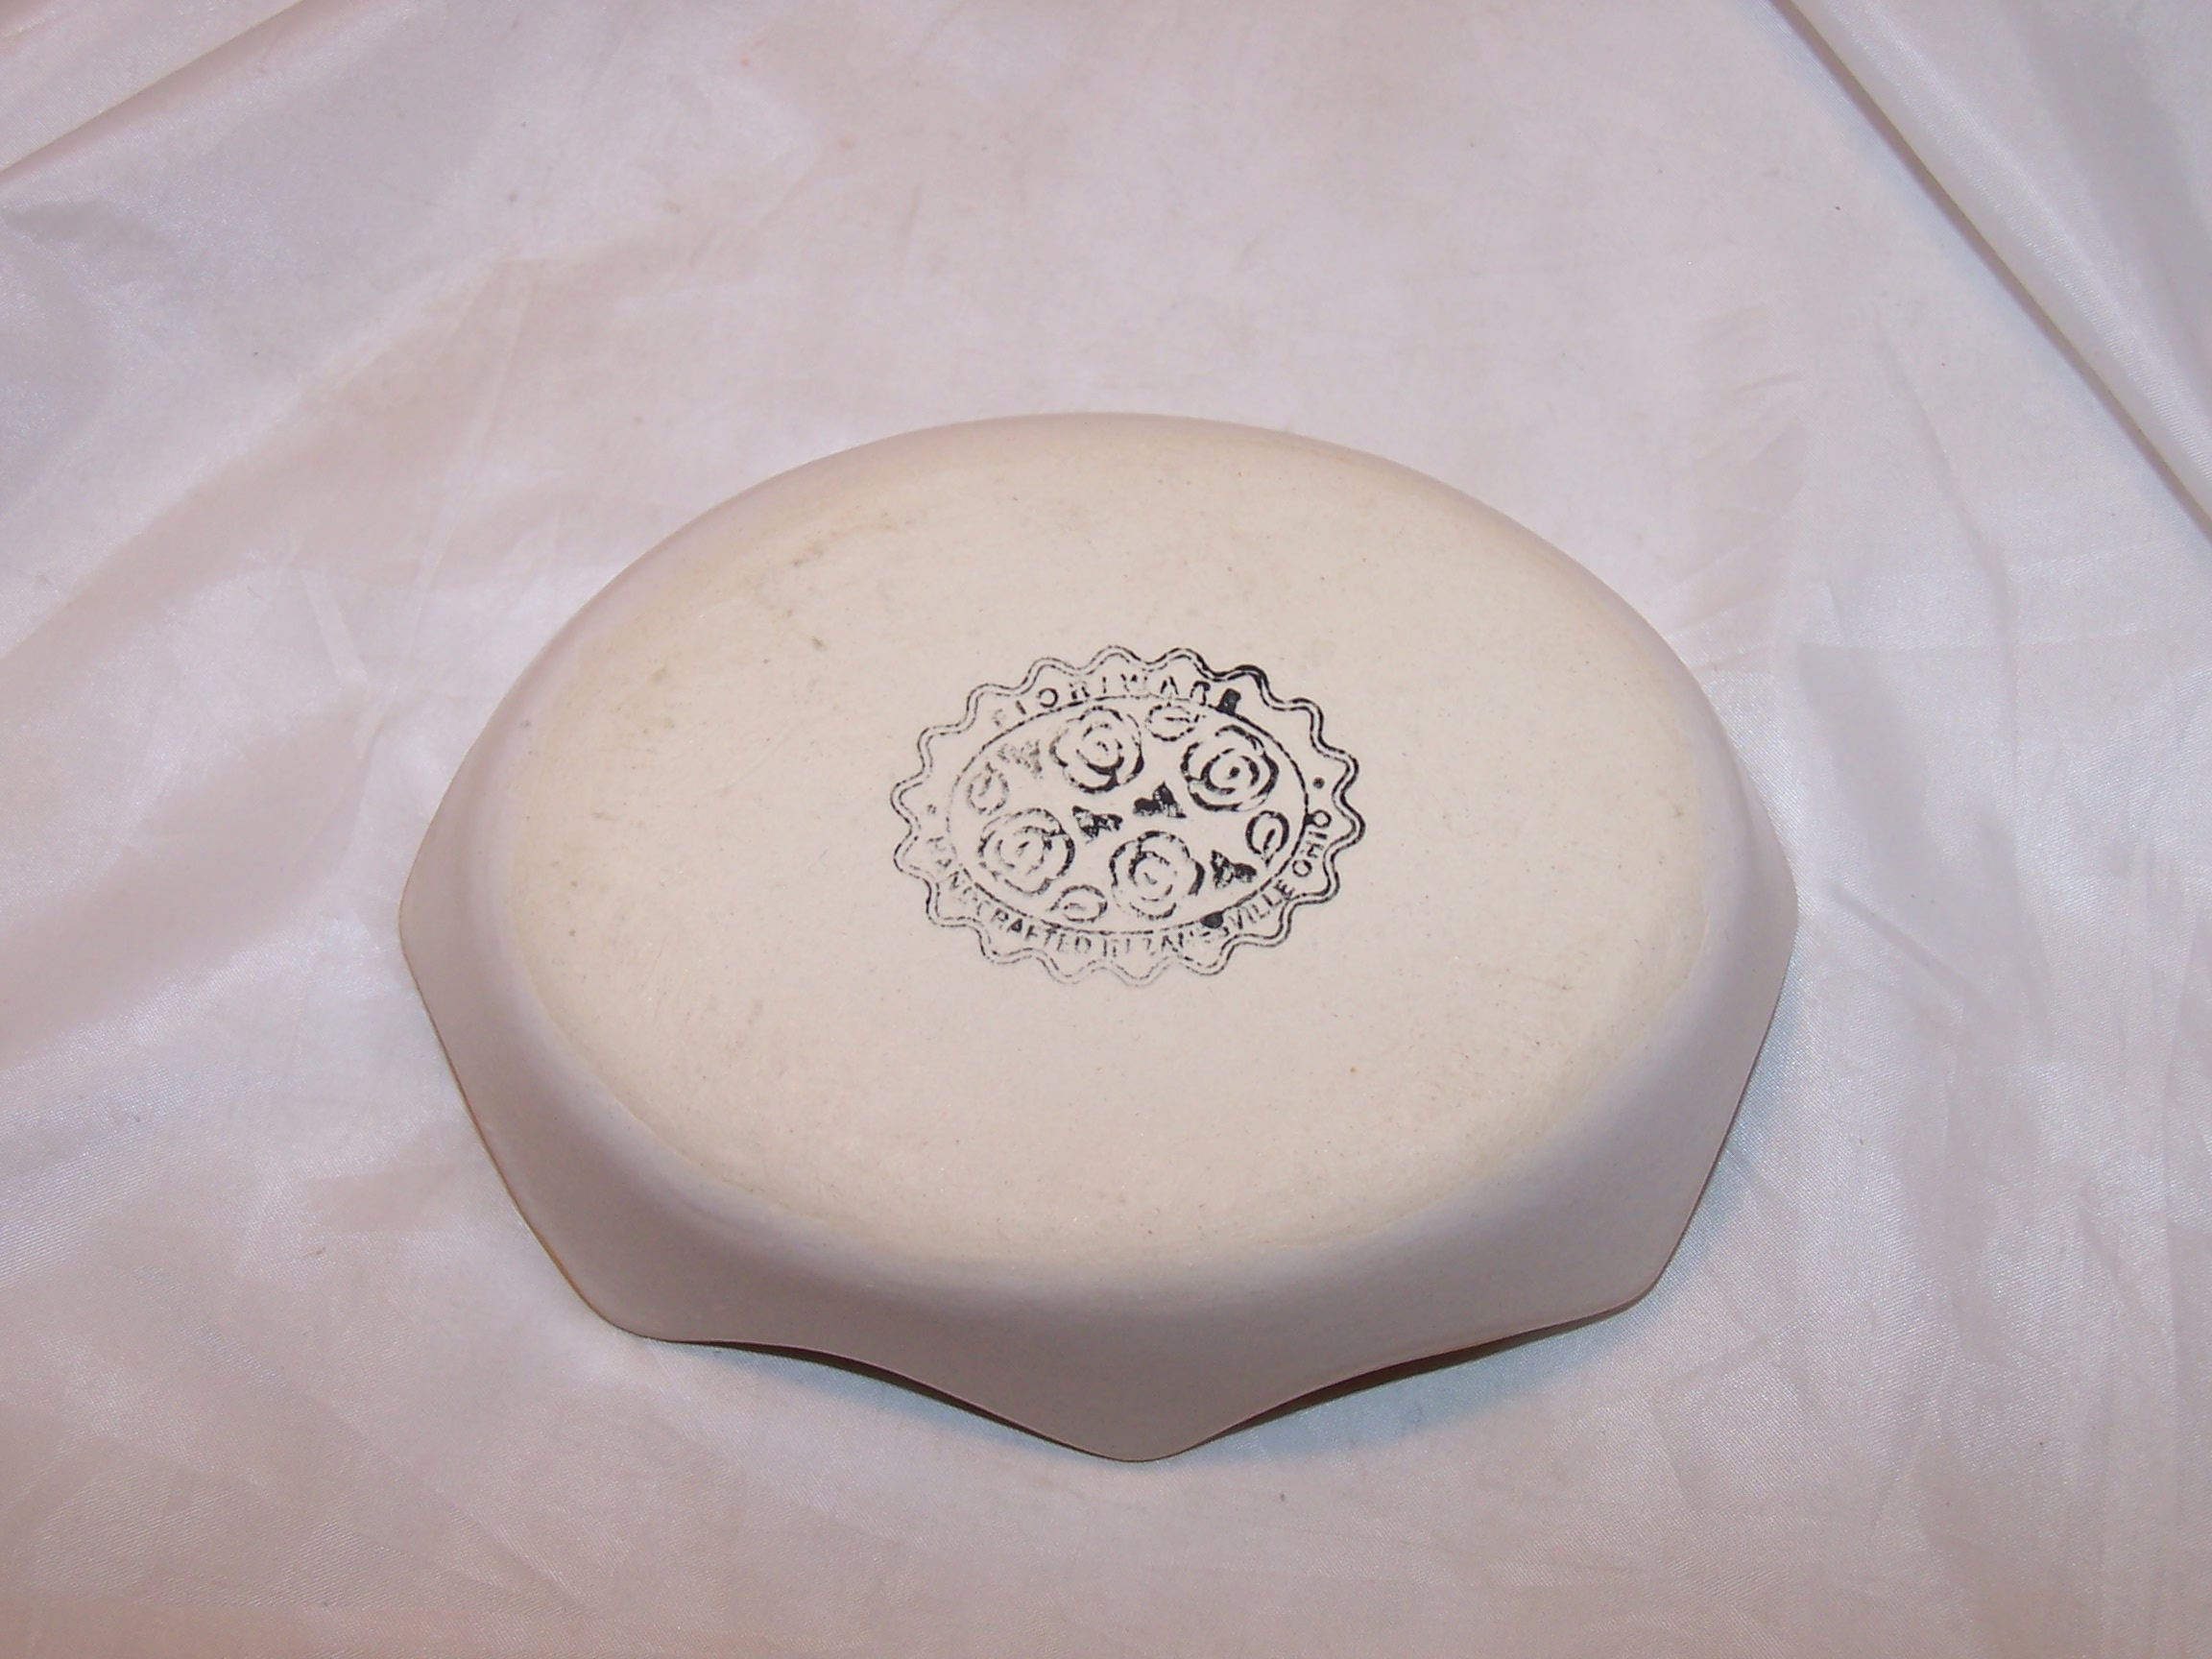 Image 5 of Fioriware Soap Dish Sunflower Handcrafted Ohio